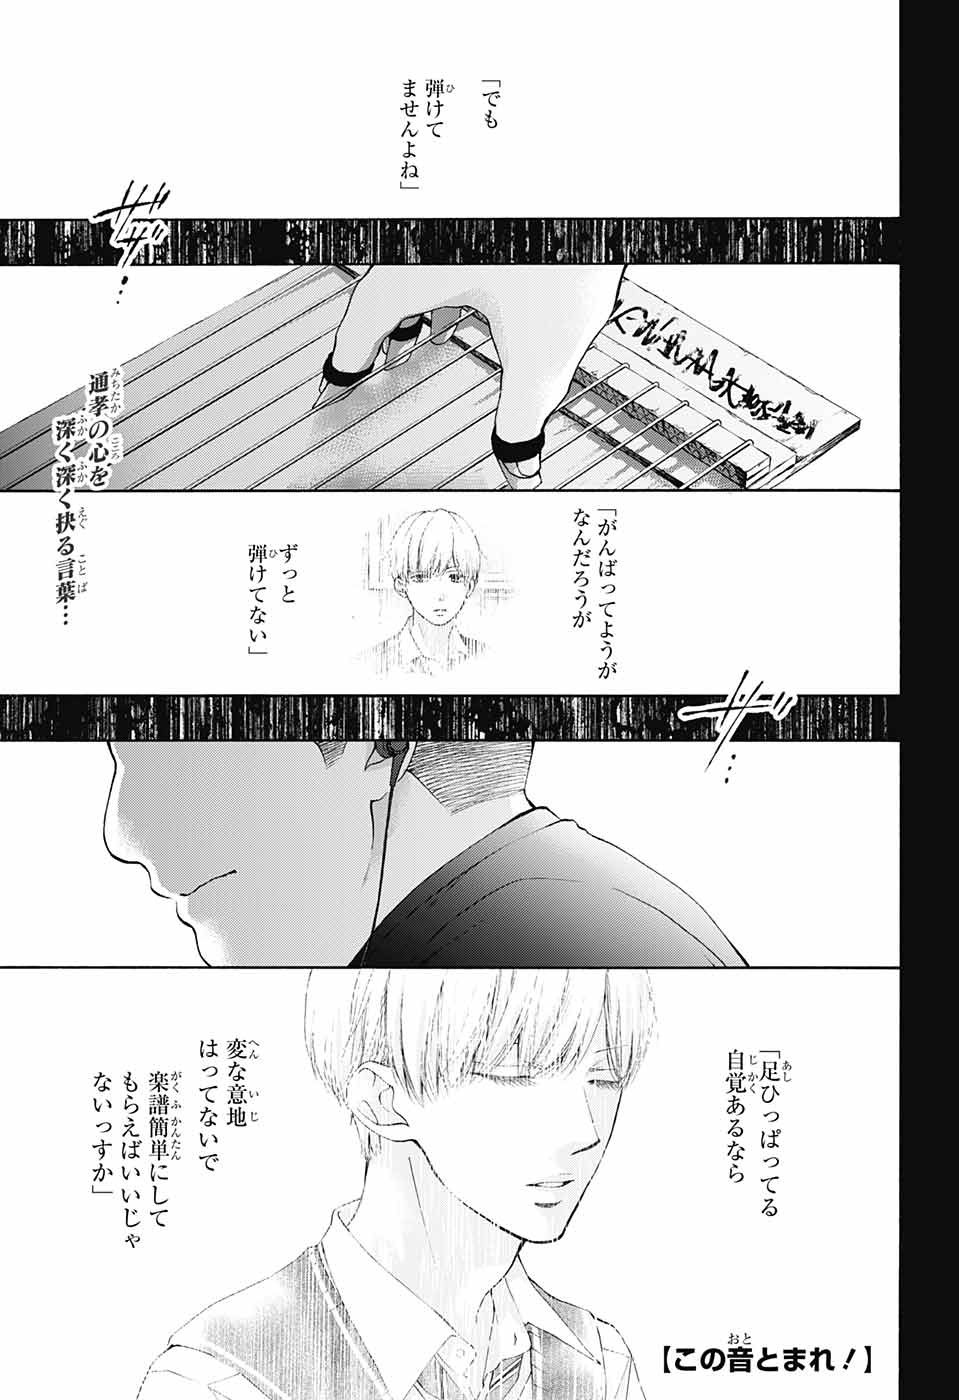 Kono Oto Tomare! - Chapter 080 - Page 1